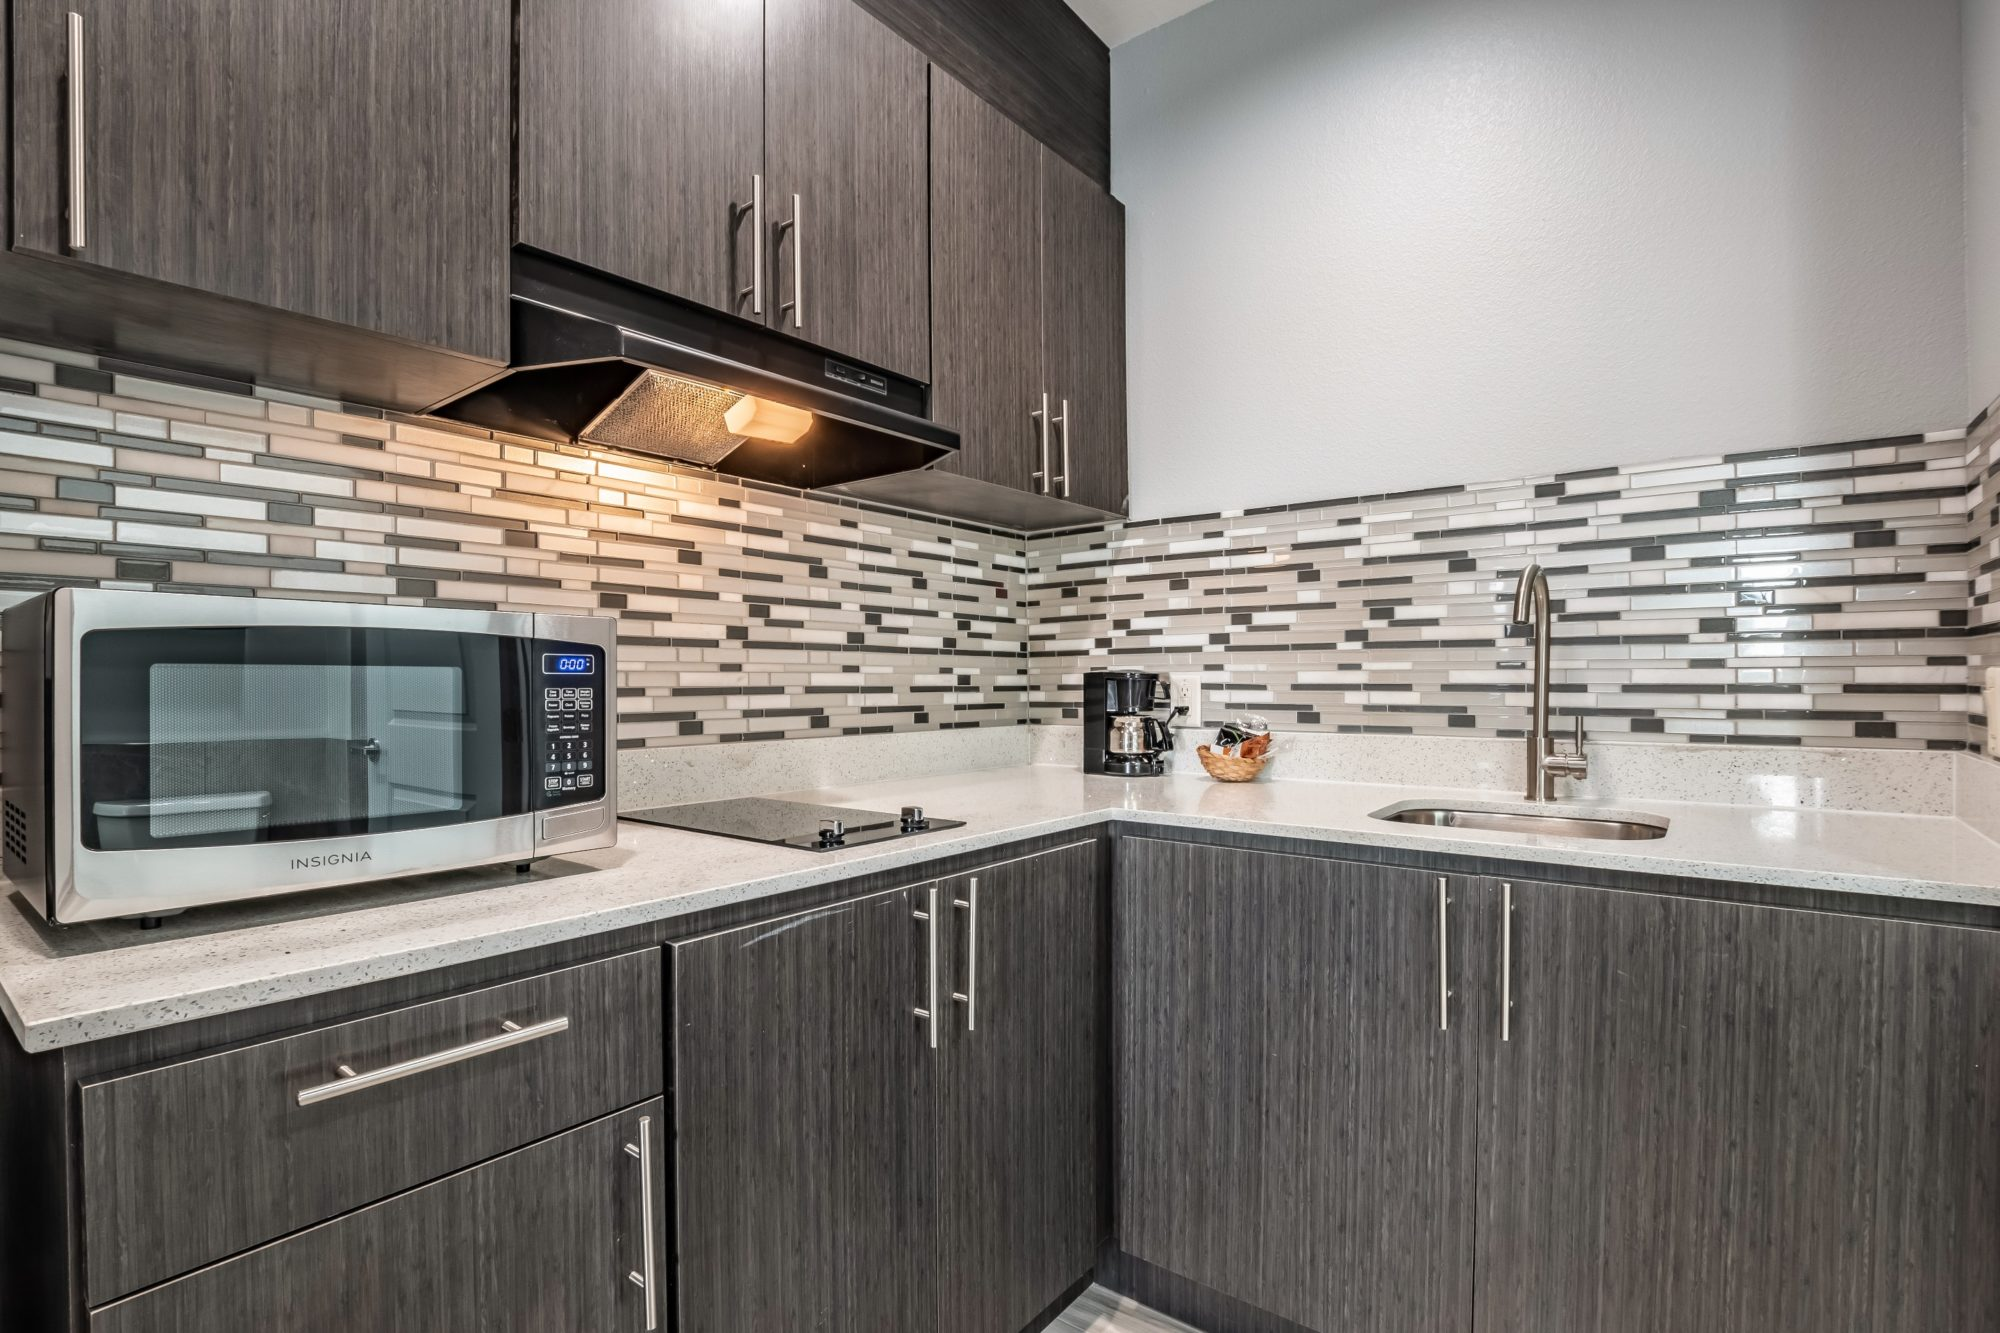 Wall and base cabinets with cooker hood, counter top with microwave, hob,coffee maker, sink